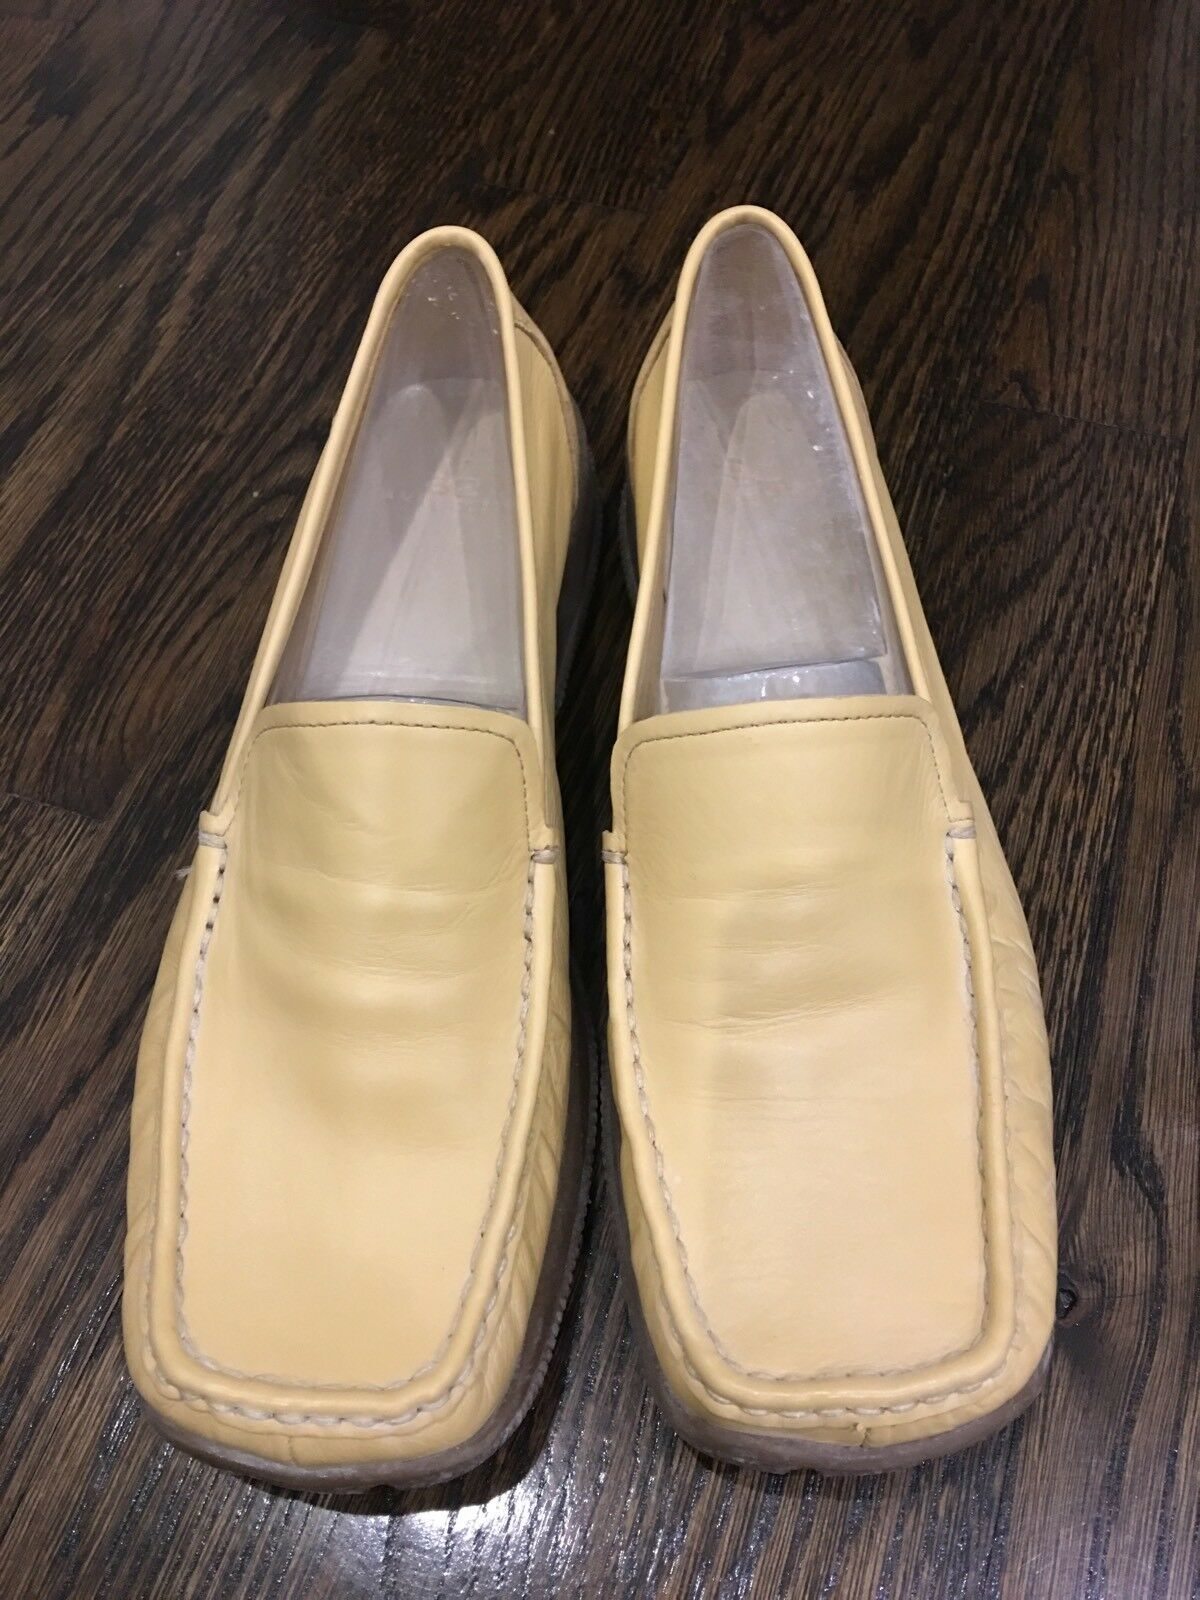 New In Box Loafer Blonde Leder Anne Klein Loafer Box Pedro AK2 Größe 8 a47de7